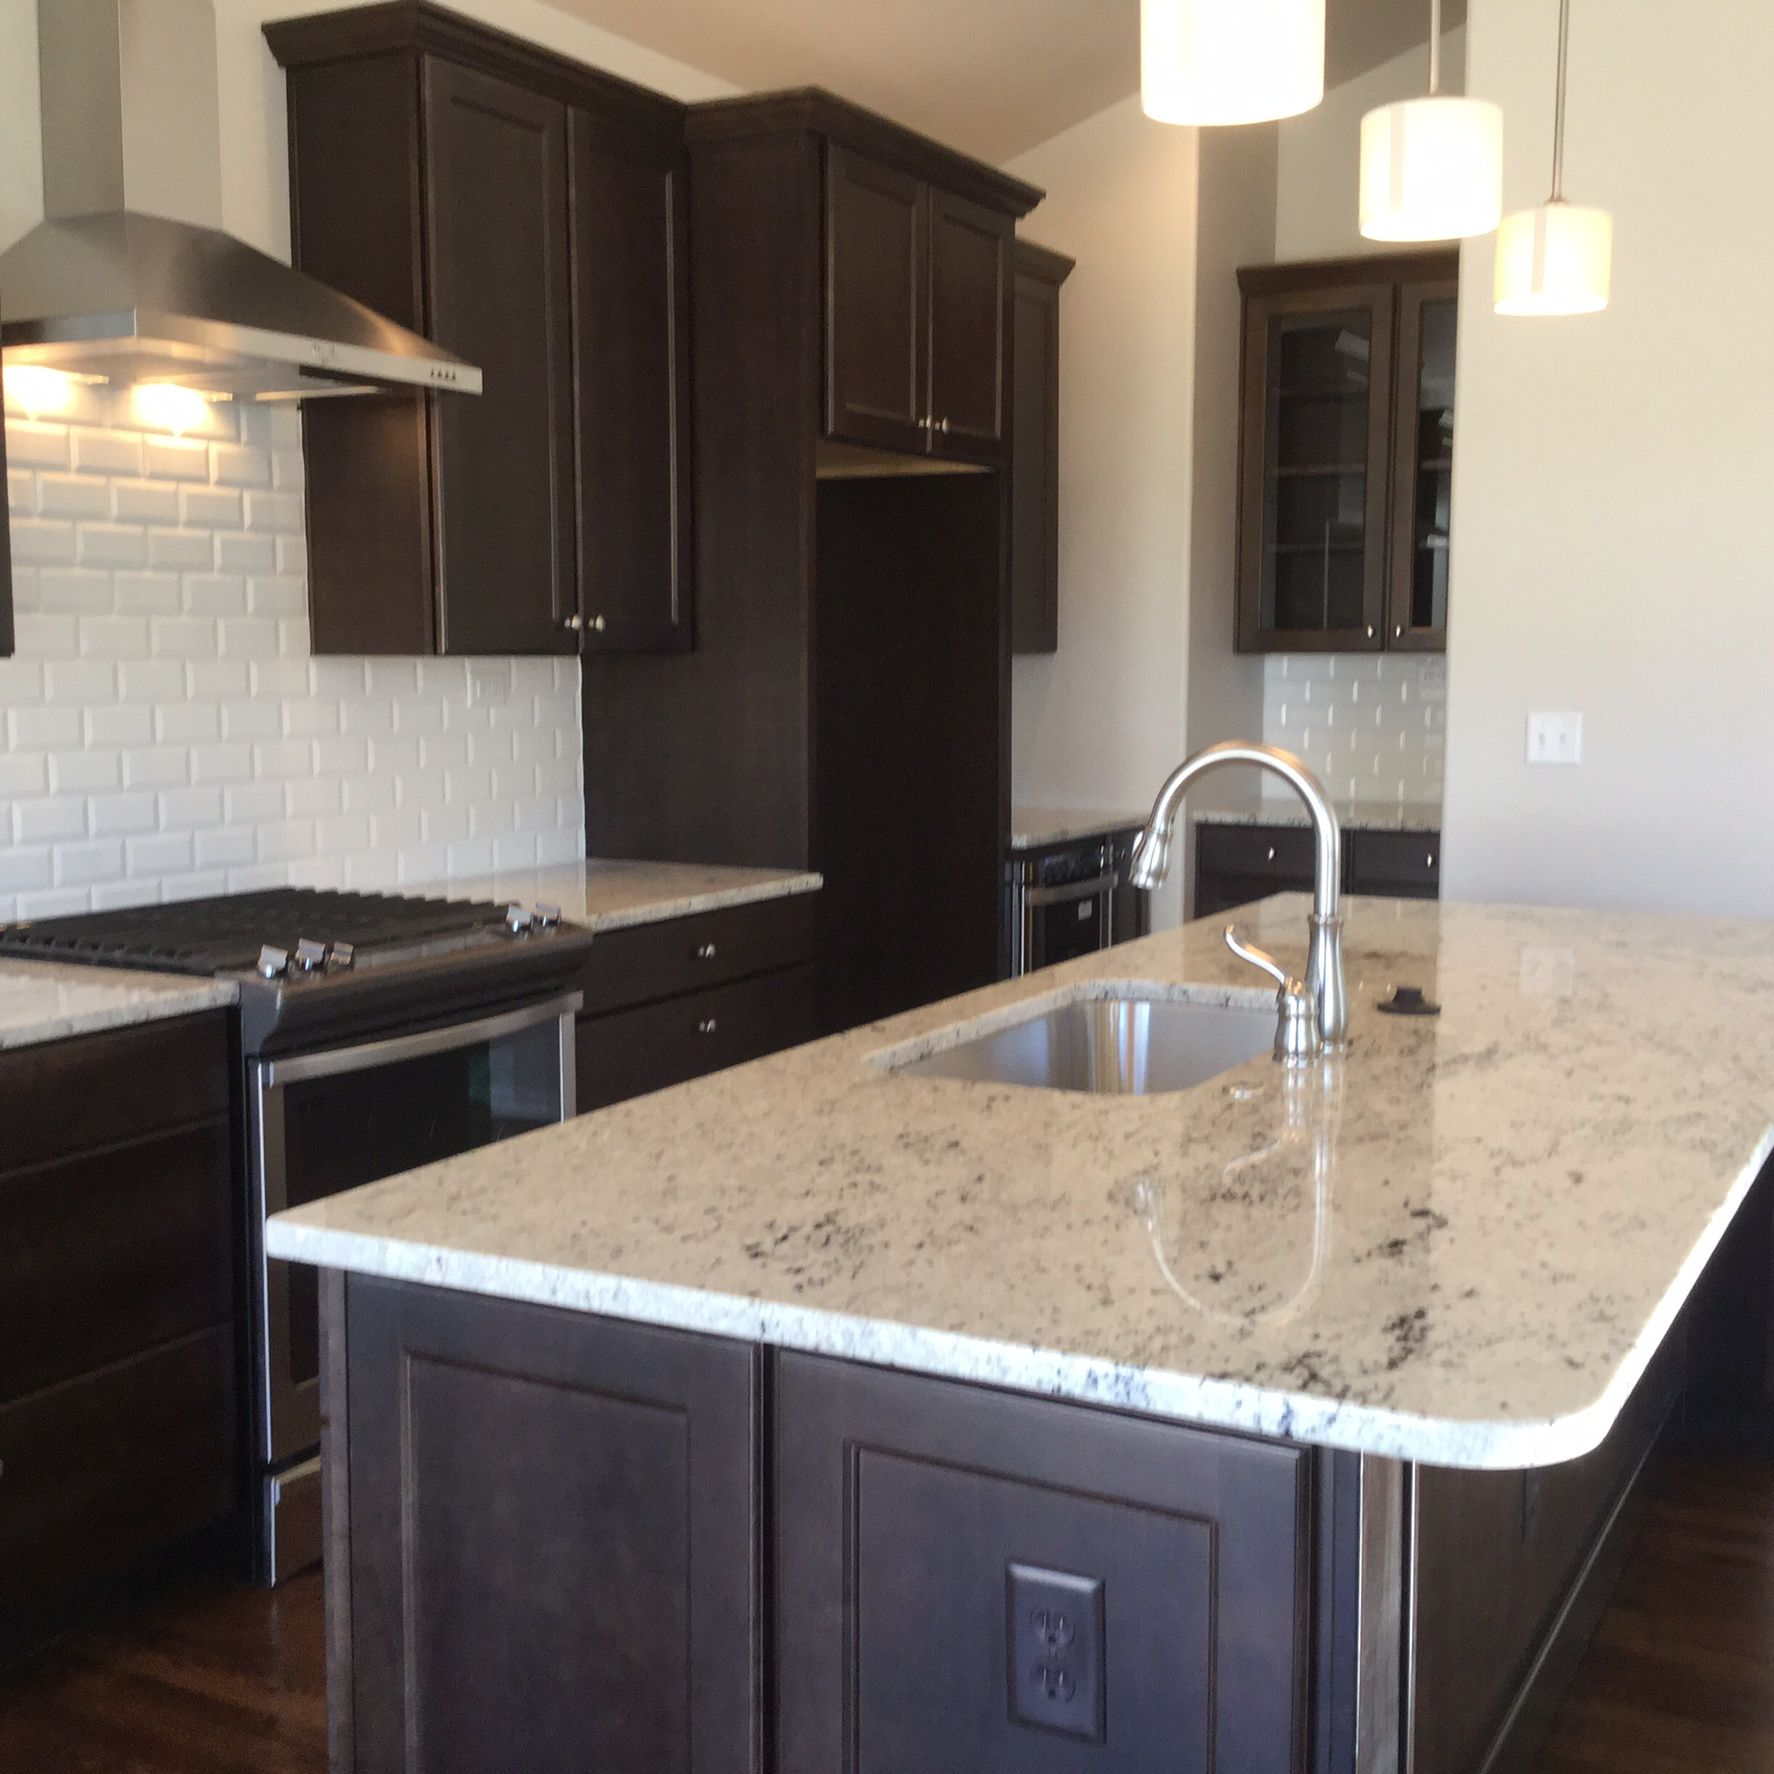 Material For Kitchen Cabinet: Gourmet Kitchen Features Colonial White Granite, Espresso